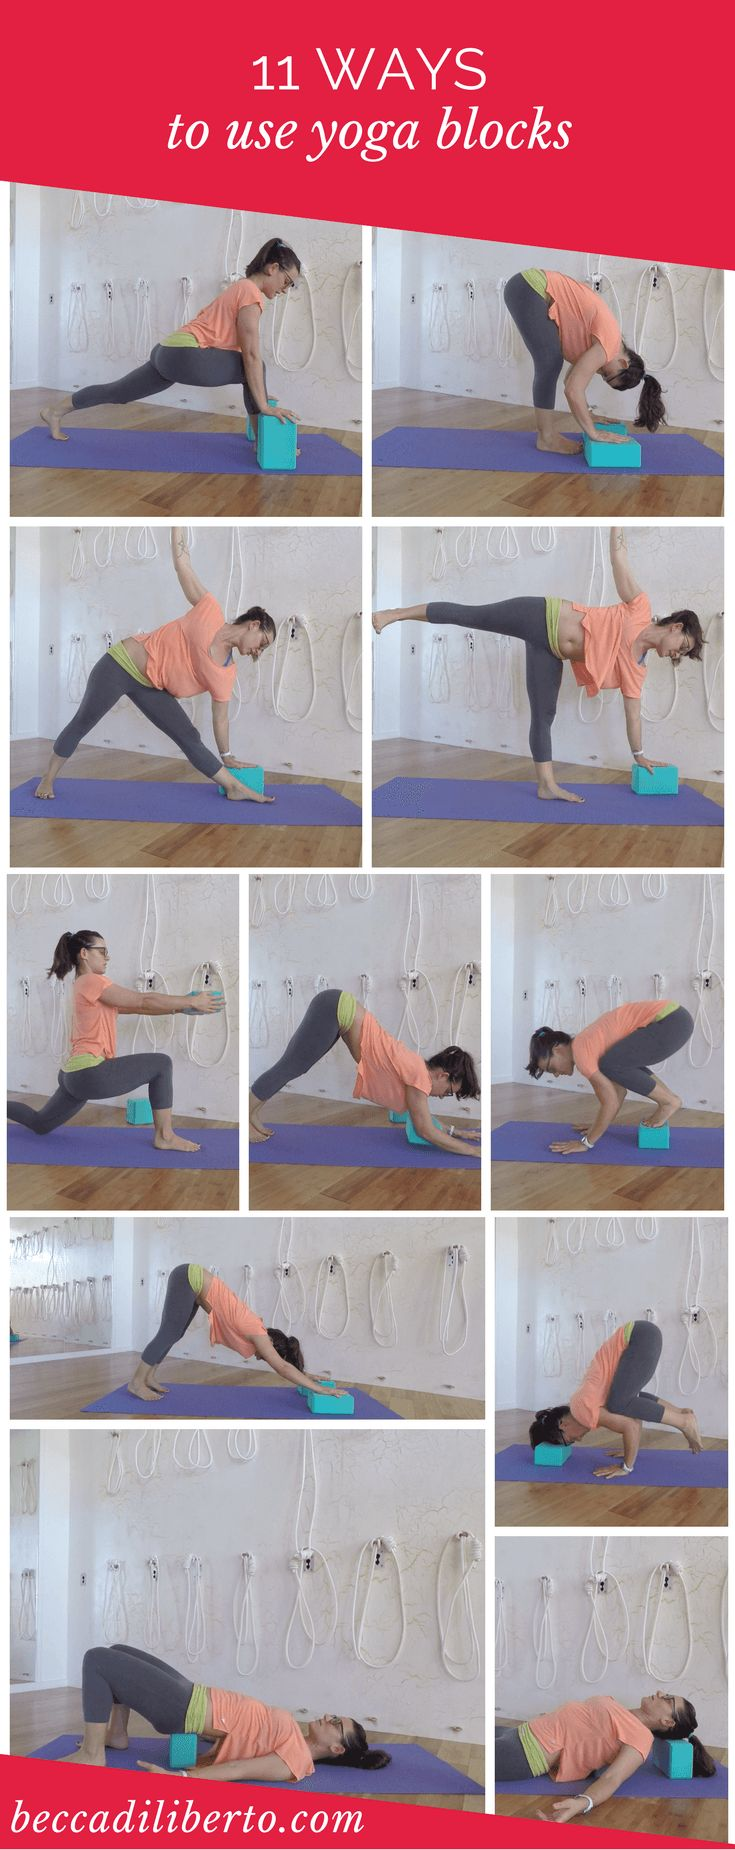 learn how to use yoga blocks to customize your yoga practice | click to watch th...